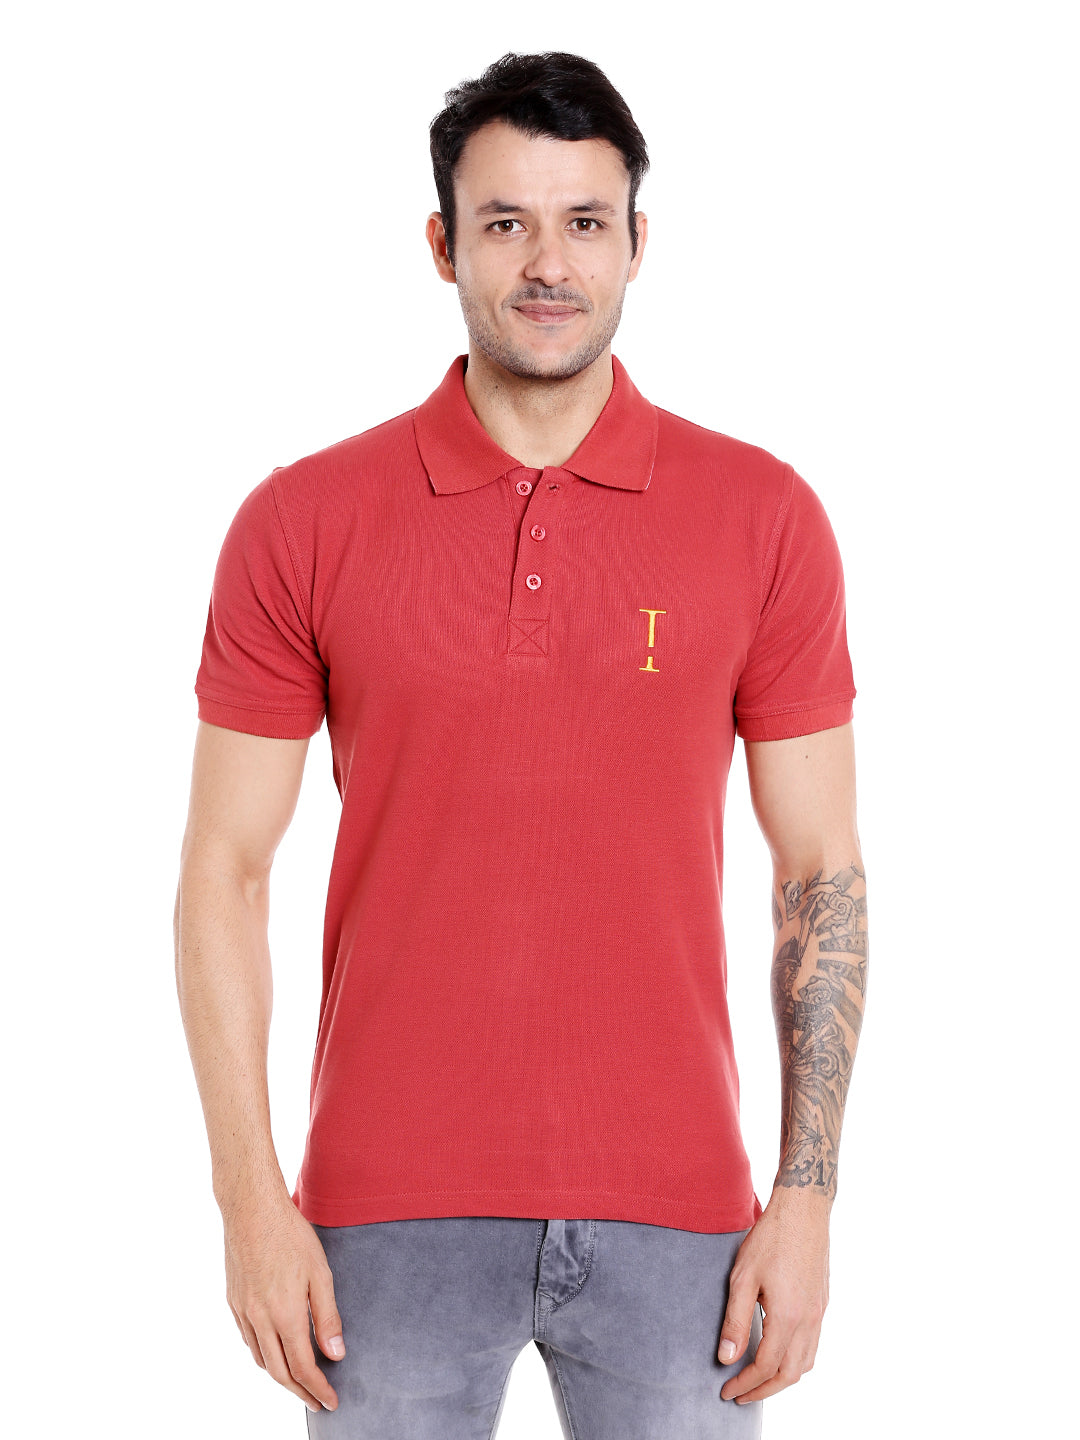 marsala maroon solid cotton polo t-shirt for men